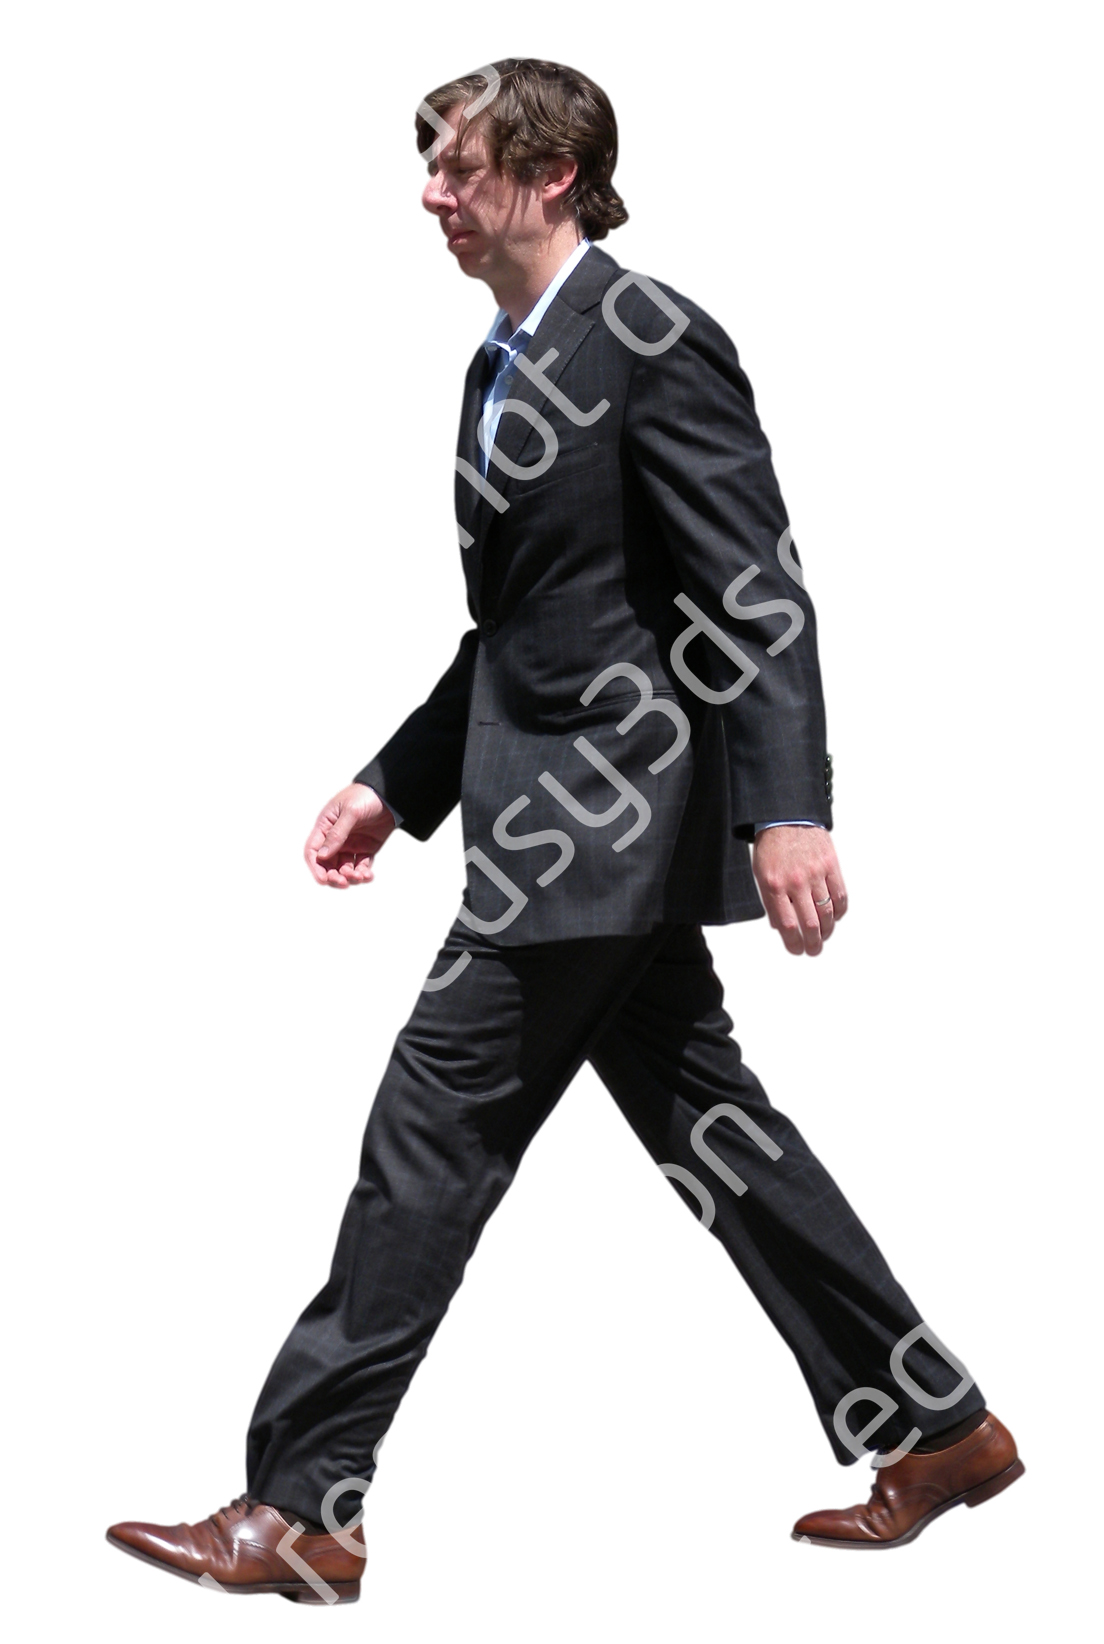 (Single) Business People V. 1 #056 man, walking